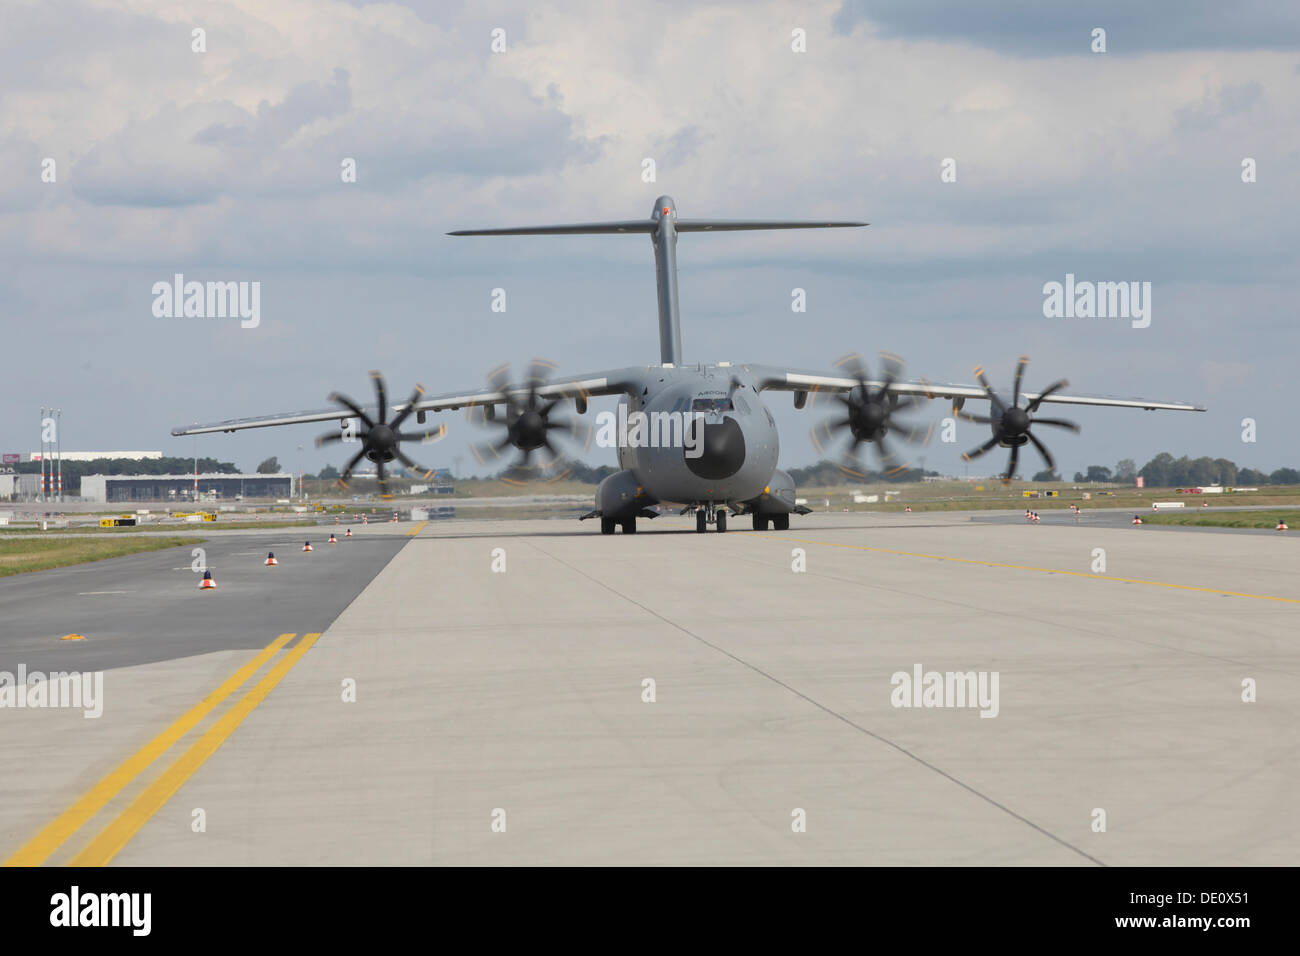 Airbus Type A400M military cargo plane landing at Berlin-Schoenefeld Airport, International Aviation and Aerospace Exhibition - Stock Image